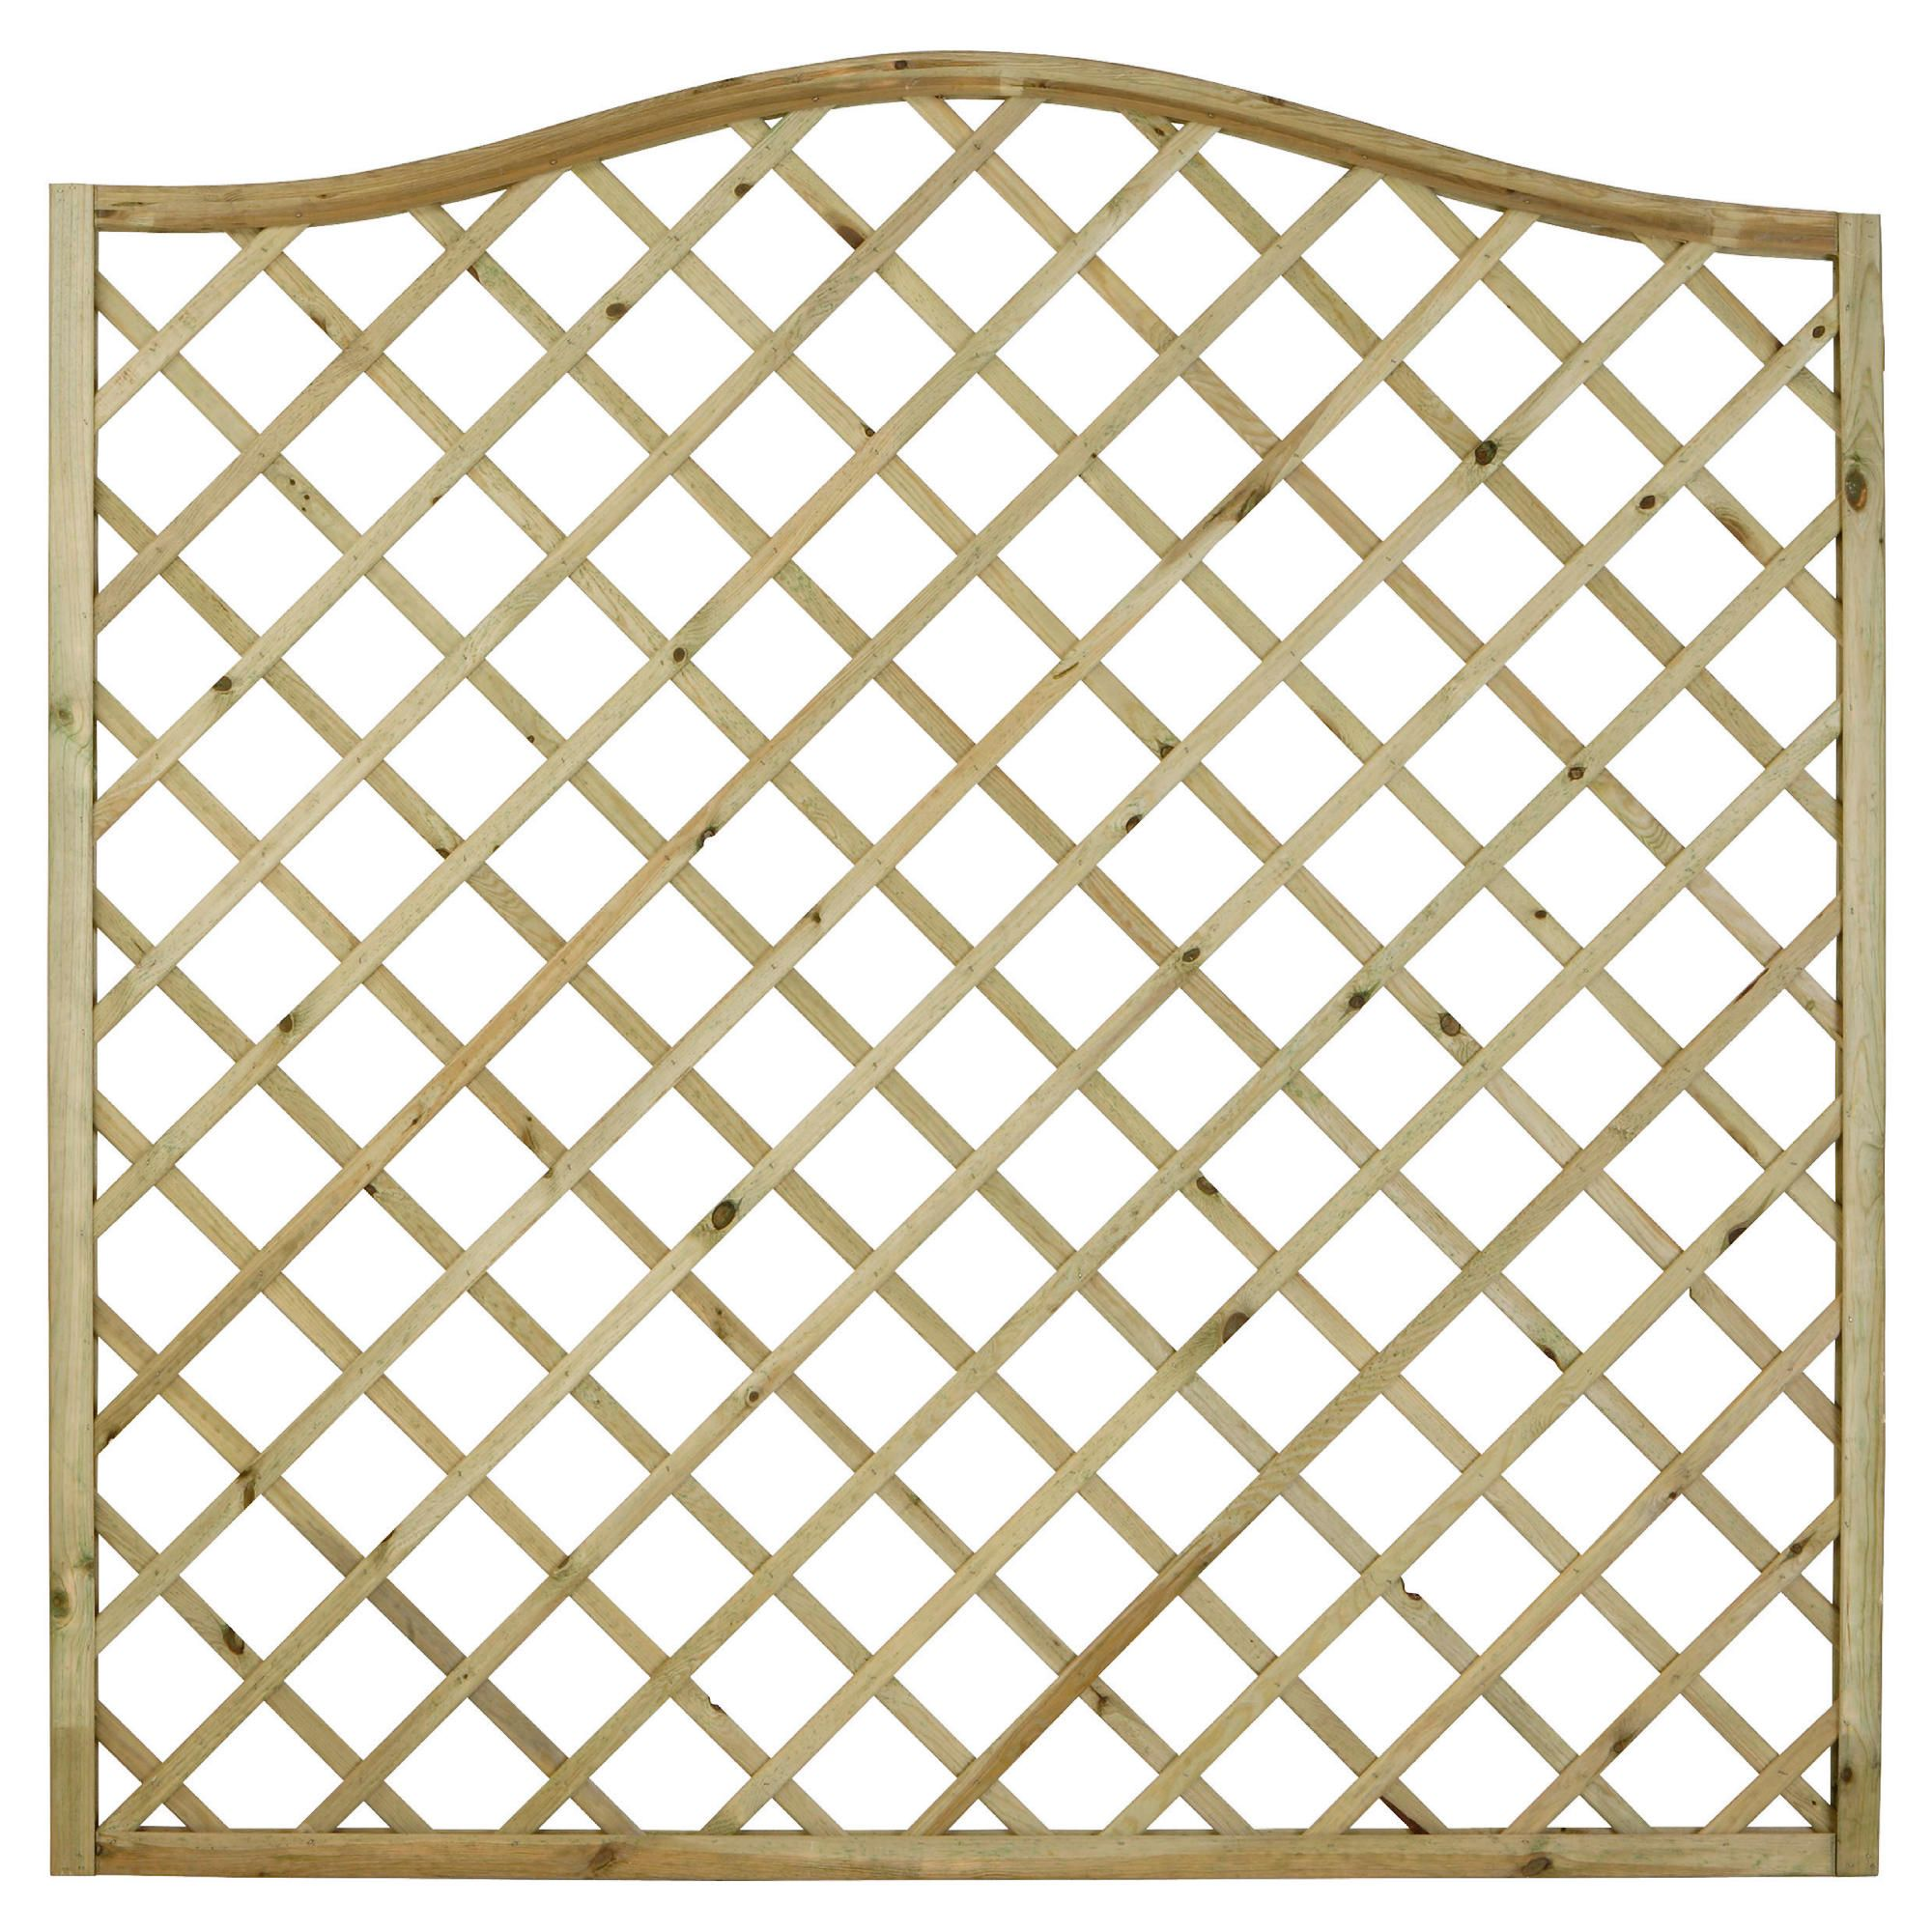 Timberdale 1.8mx1.8m Hanbury Screen Pack of 5 at Tesco Direct